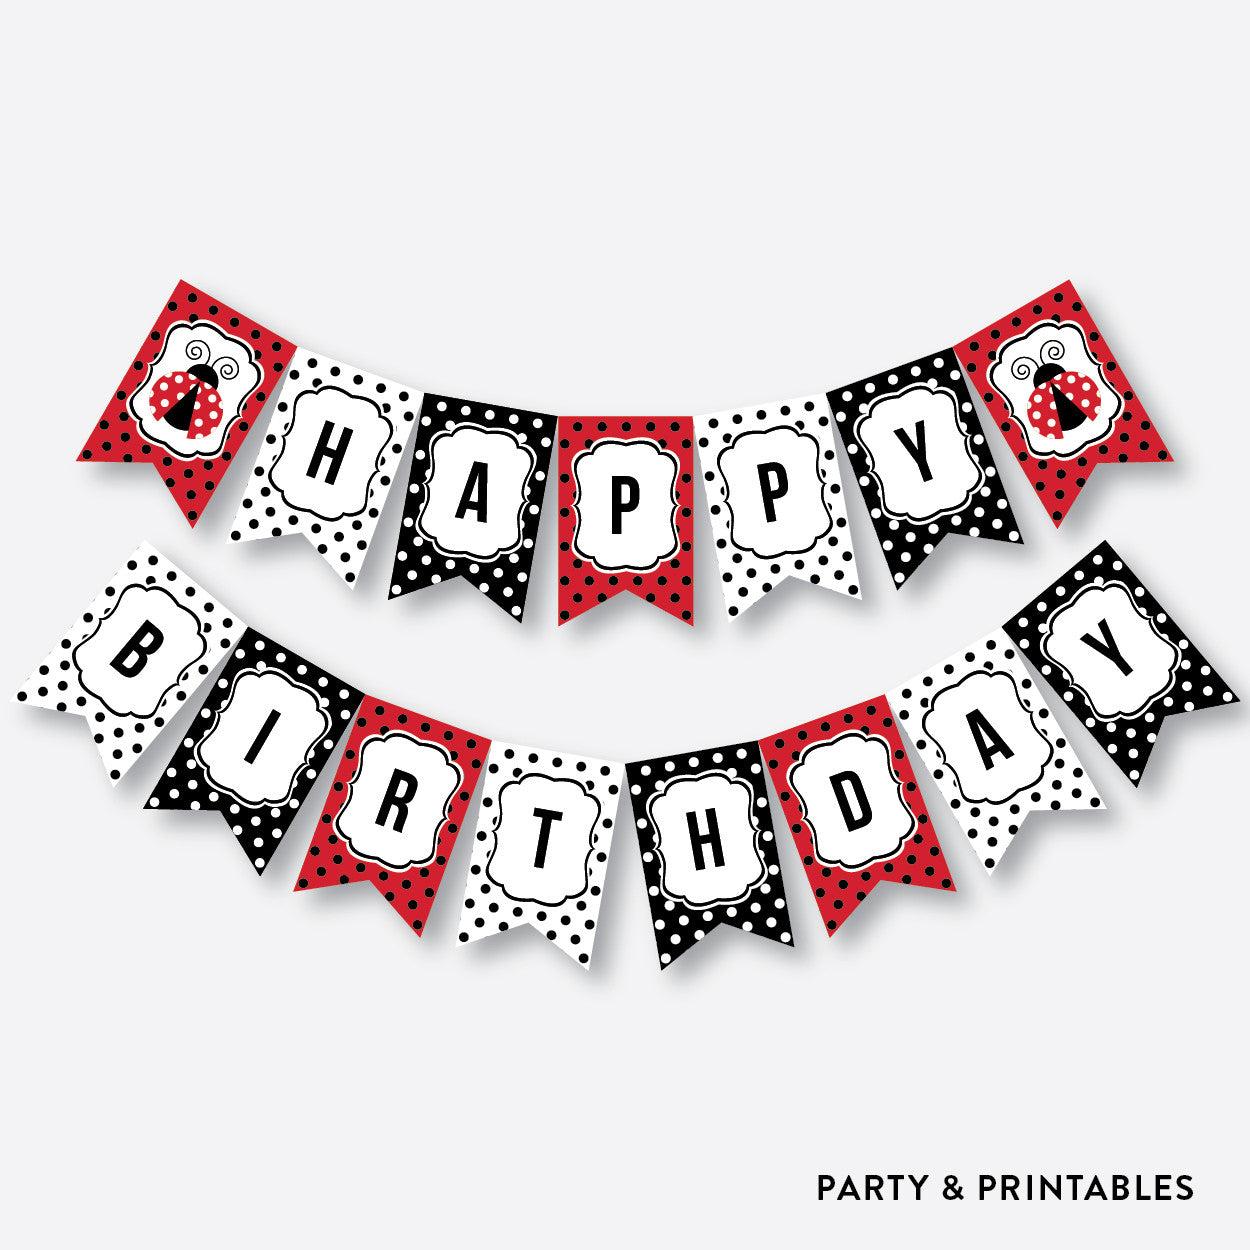 Lady Bug Party Banner / Happy Birthday Banner / Non-Personalized / Instant Download (SKB.03), party printables - Party and Printables